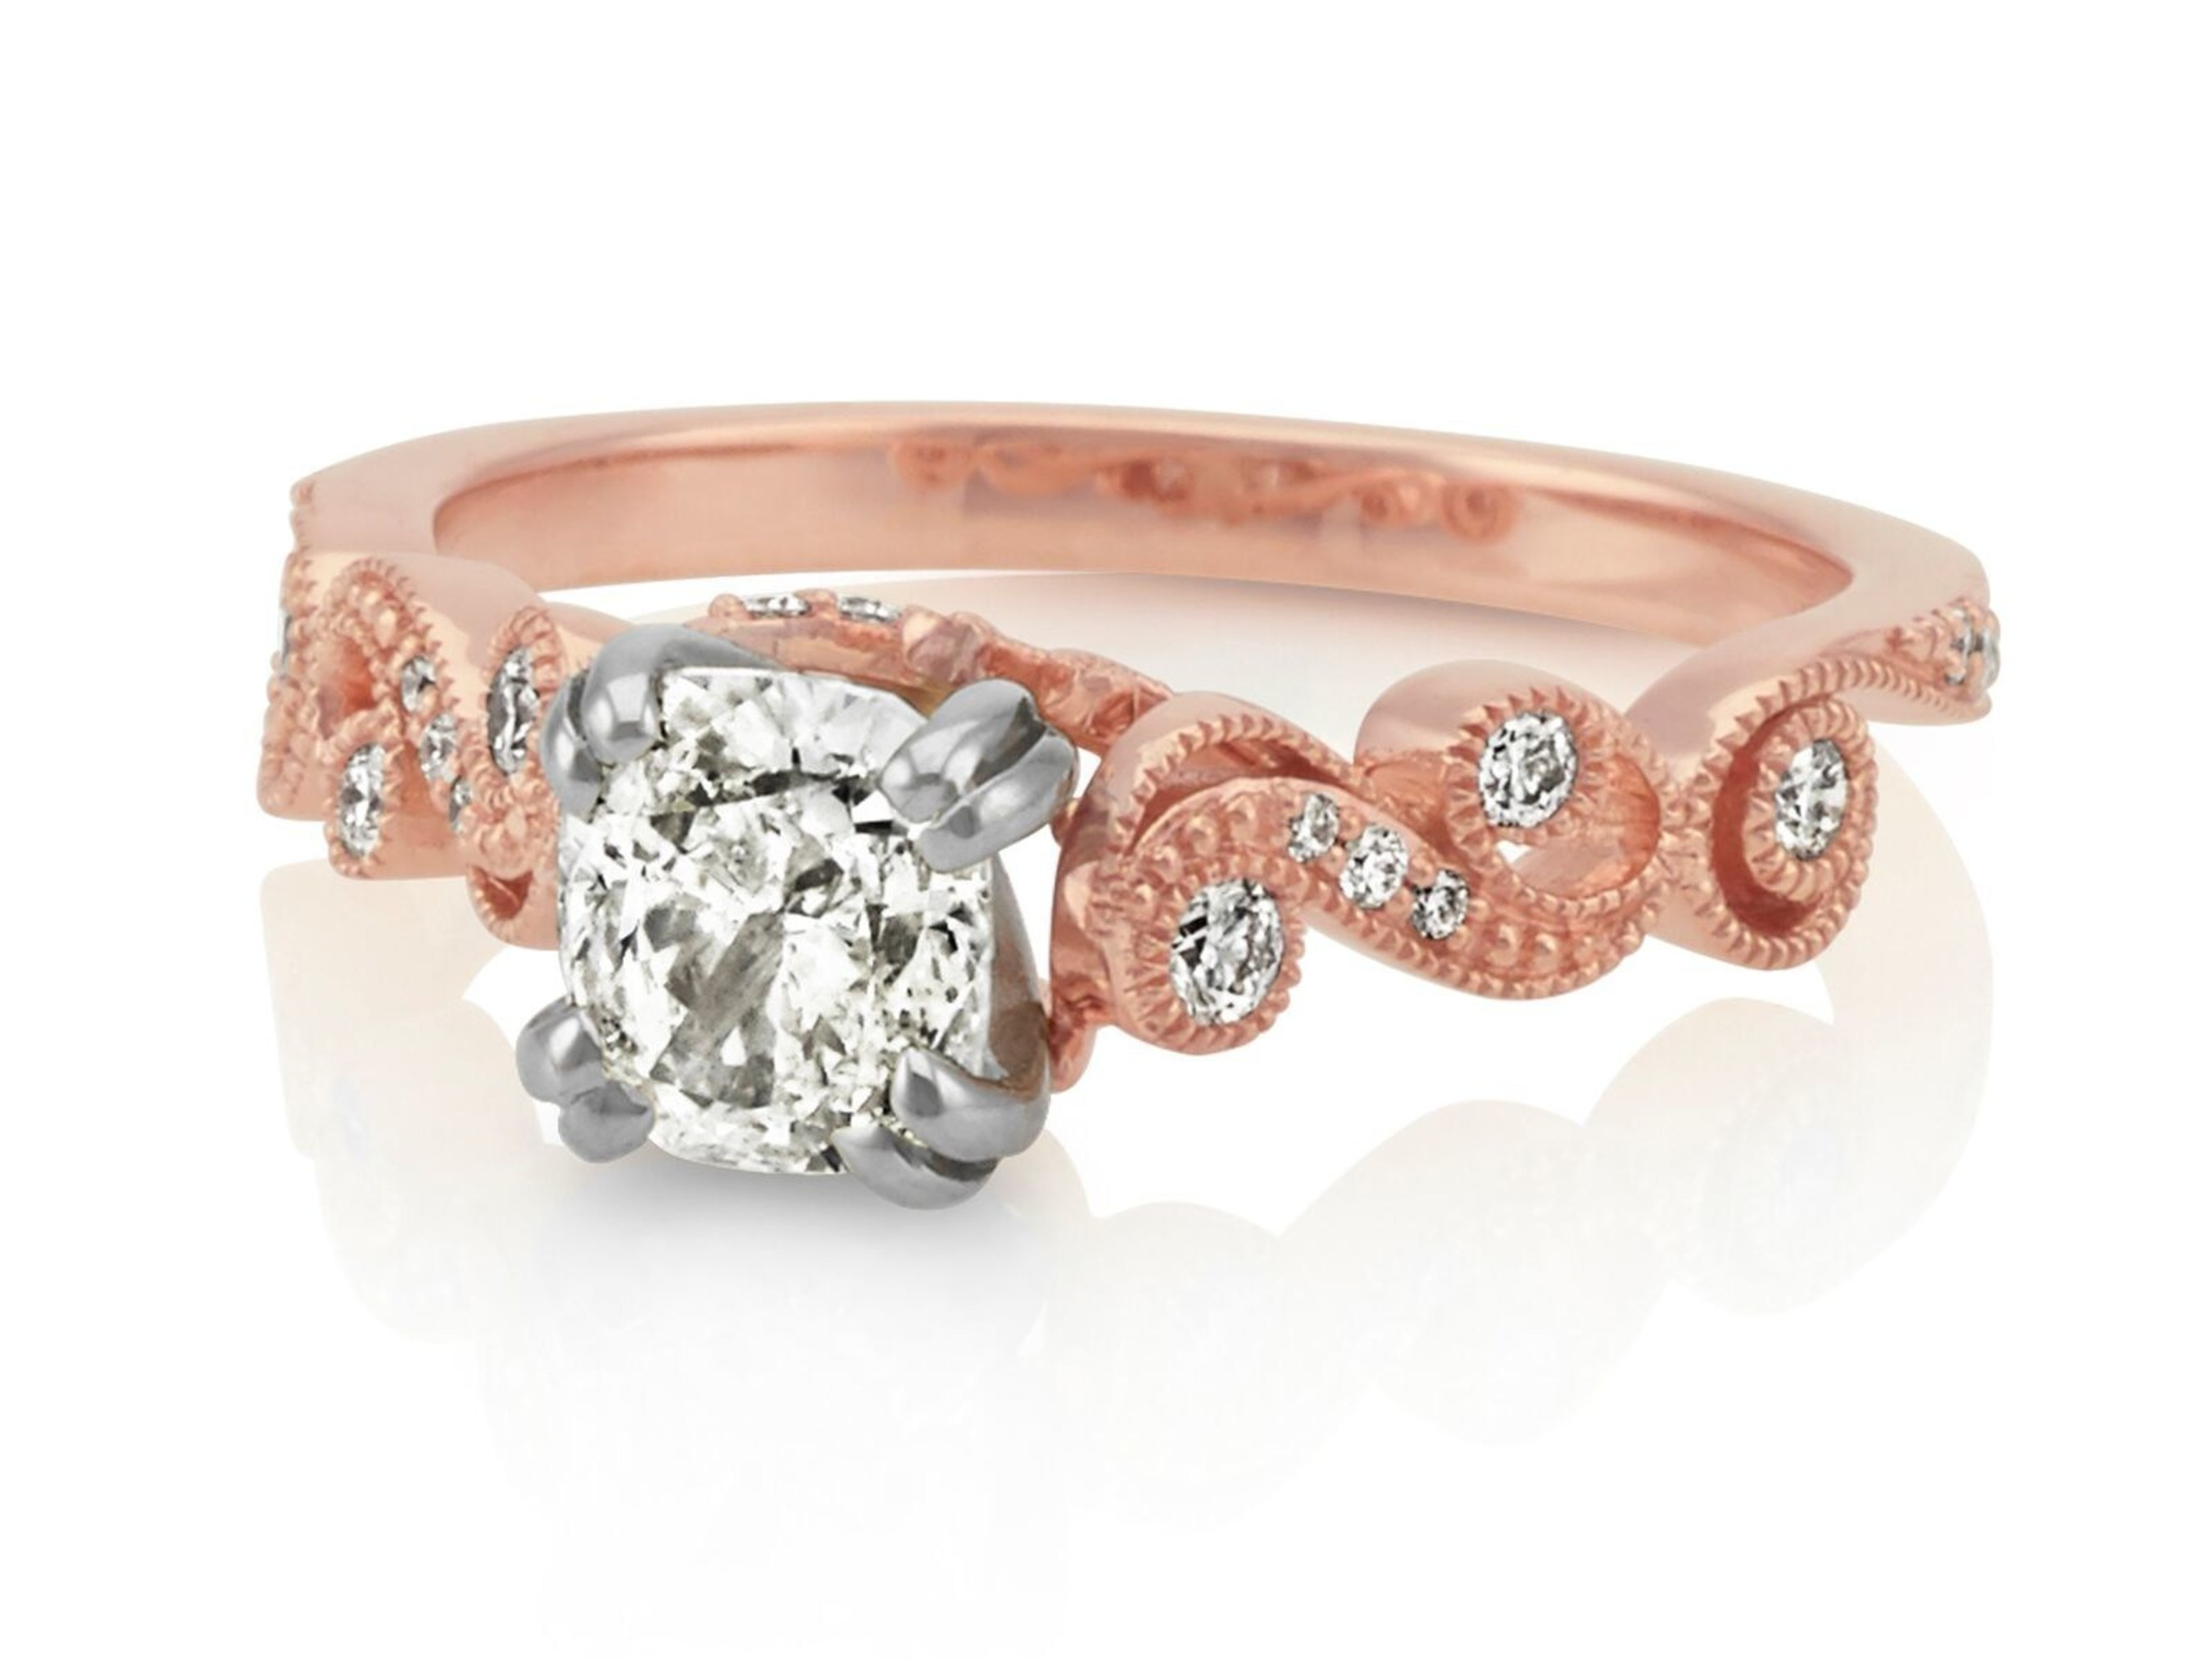 7ed61eaa6337c Shane Co. Sets the Trend with Seven Signature Holiday Engagement Rings